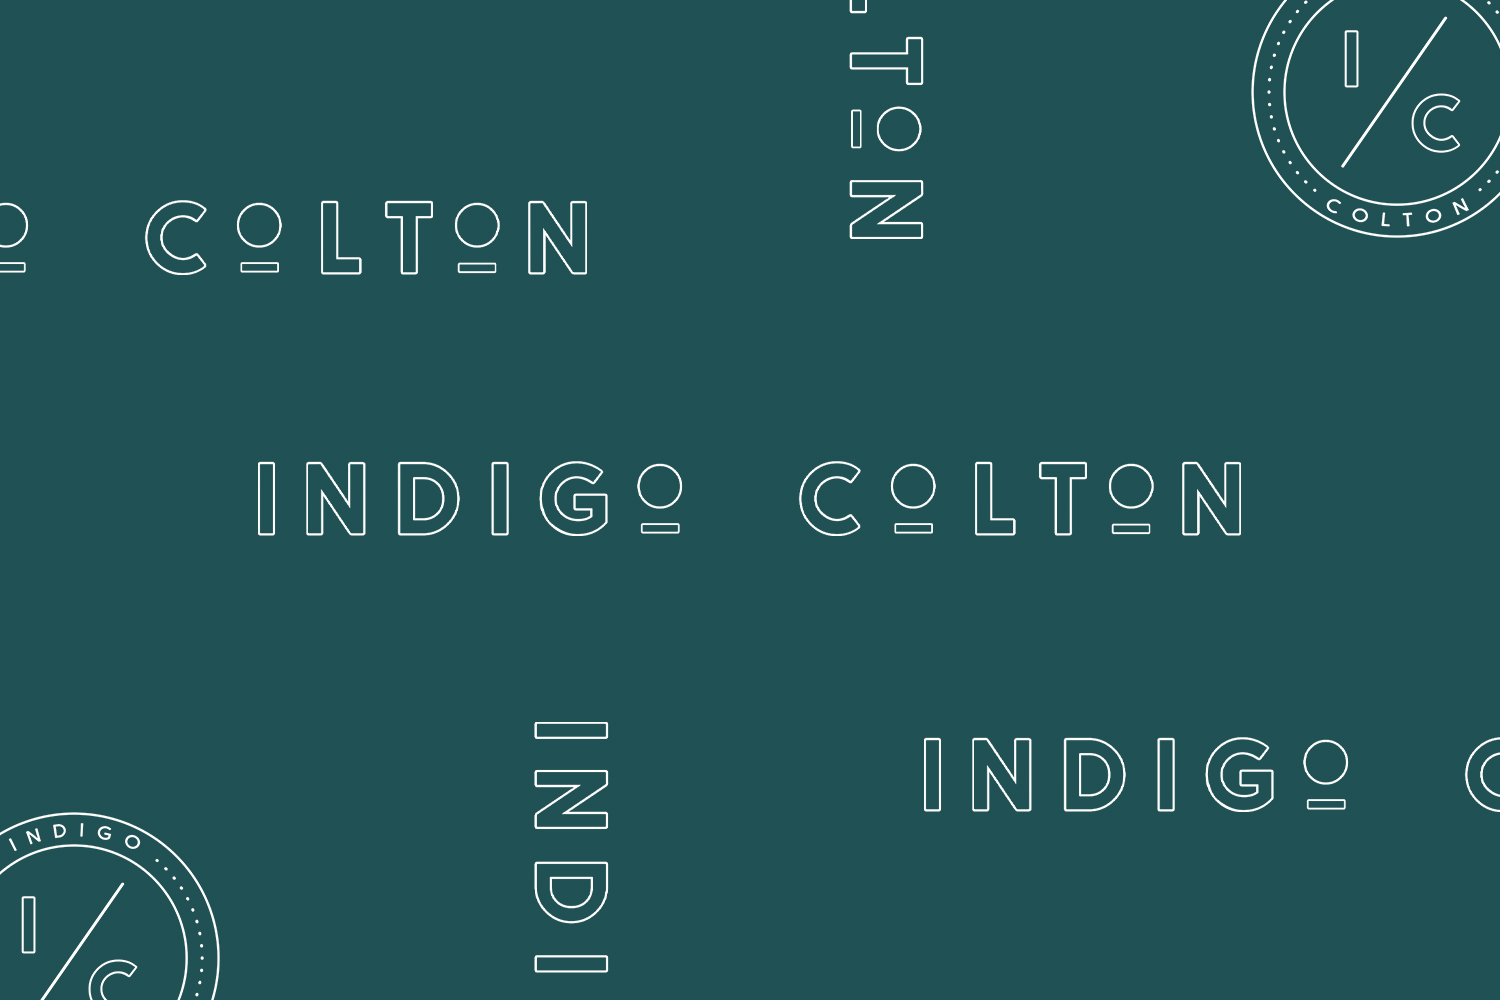 Indigo Colton - Signature Branding 2018 Update by Emily Banks Creative